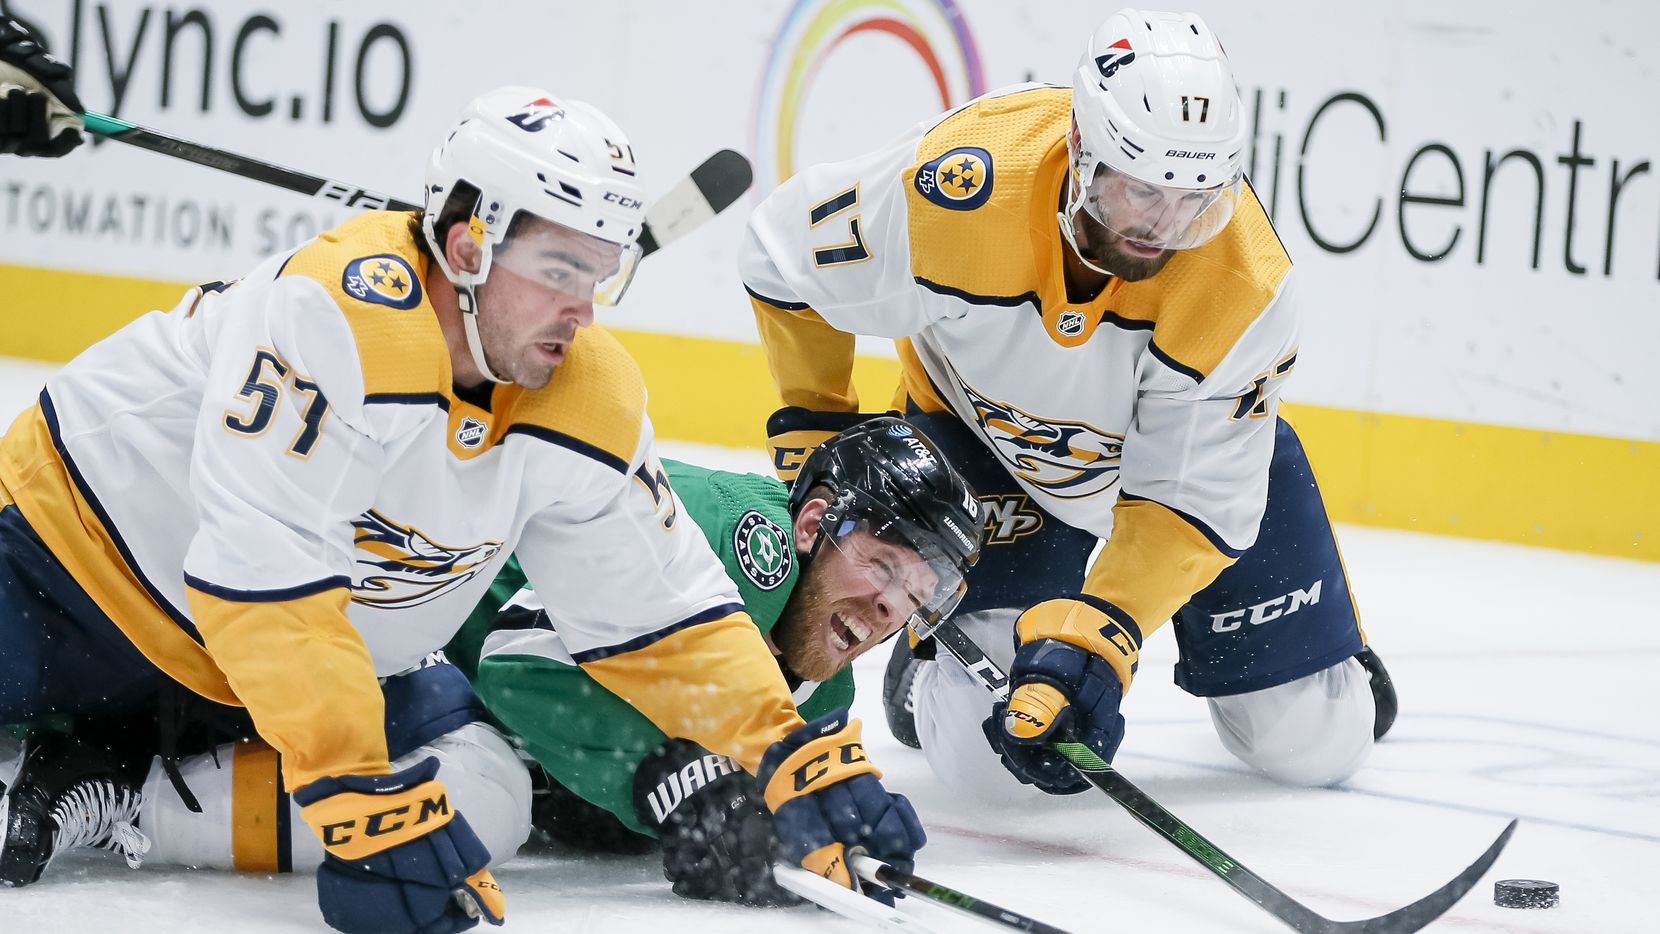 Dallas Stars forward Joe Pavelski (16) is checked to the ice by Nashville Predators defensemen Dante Fabbro (57) and Ben Harpur (17) during the third period of an NHL hockey game in Dallas Sunday, March 21, 2021.